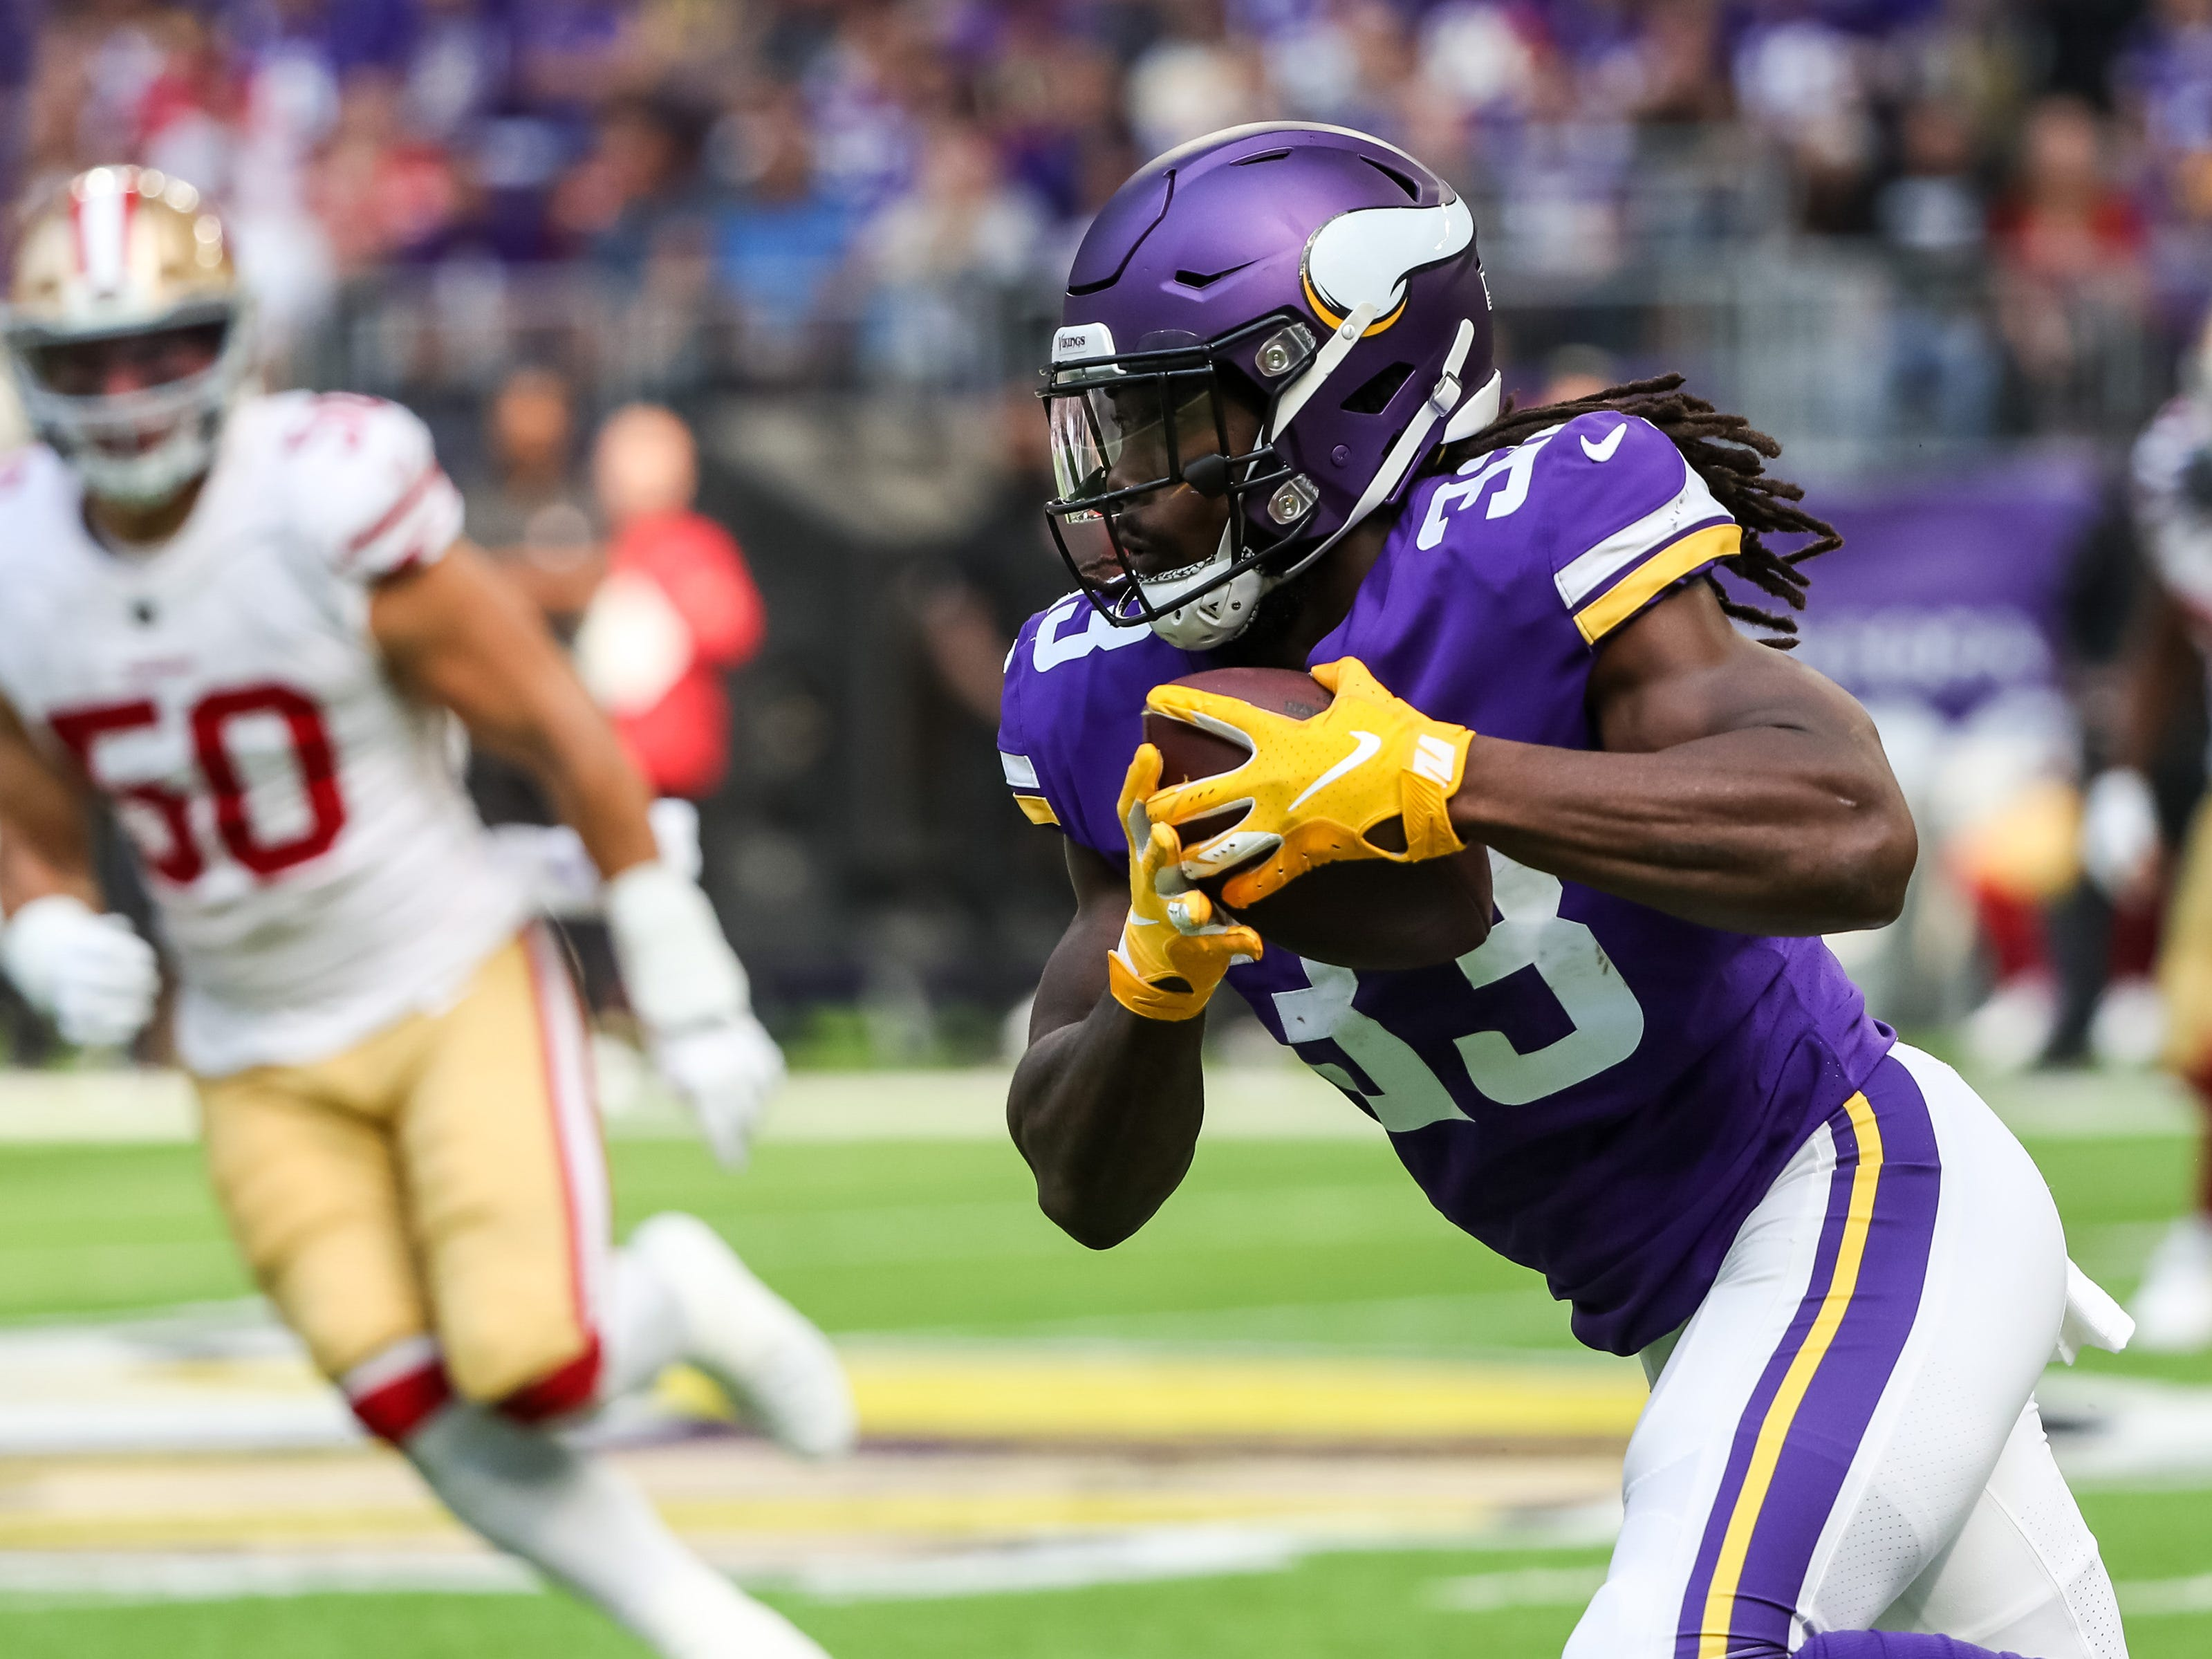 Minnesota Vikings running back Dalvin Cook carries the ball during the first quarter against San Francisco 49ers at U.S. Bank Stadium.